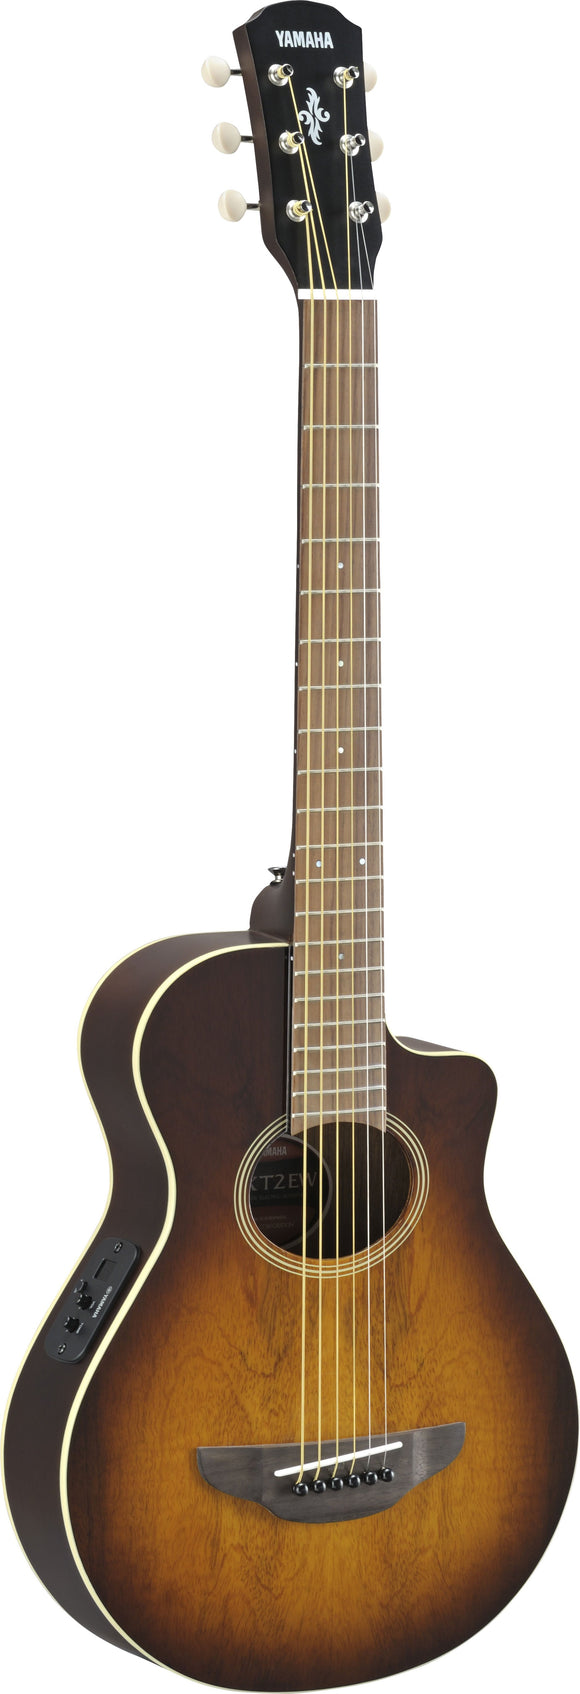 Yamaha APXT2EW 3/4 size acoustic-electric guitar (Tobacco Brown Sunburst)